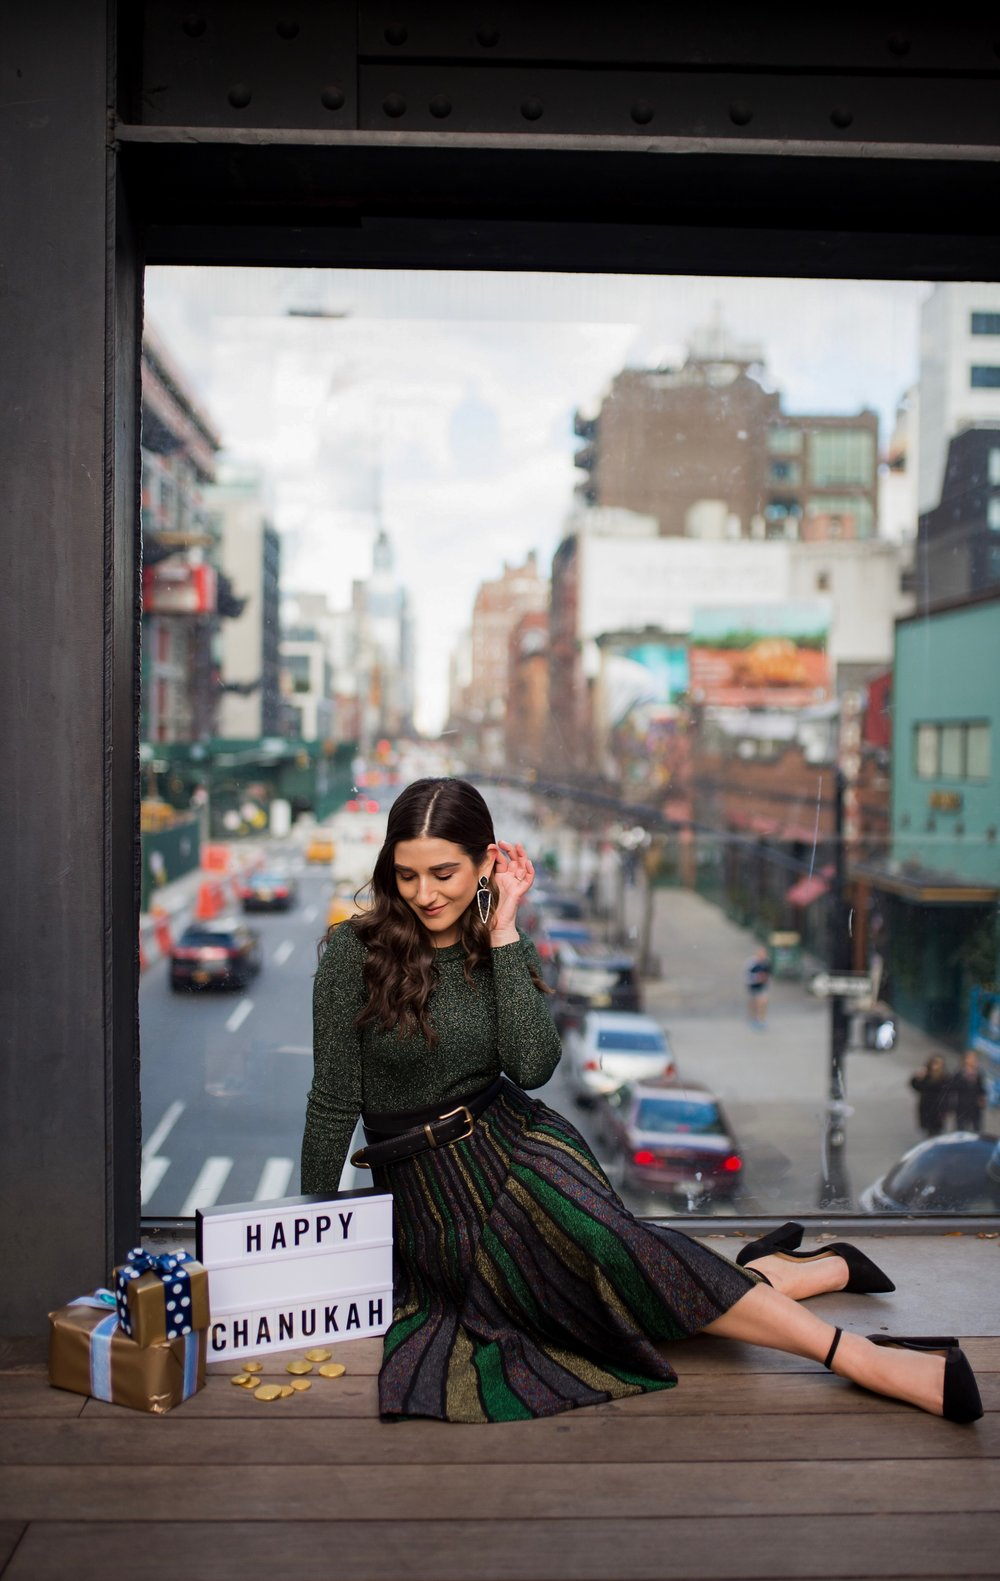 So You Wanna Talk About Diversity Don't forget me Esther Santer Fashion Blog NYC Street Style Blogger Outfit OOTD Trendy Shopping Miri Couture Laurel Creative Sparkles Midi Skirt Glitter Holiday Jewish Chanukah 2018 Green Top Glitter Long Sleeve Shirt.jpg